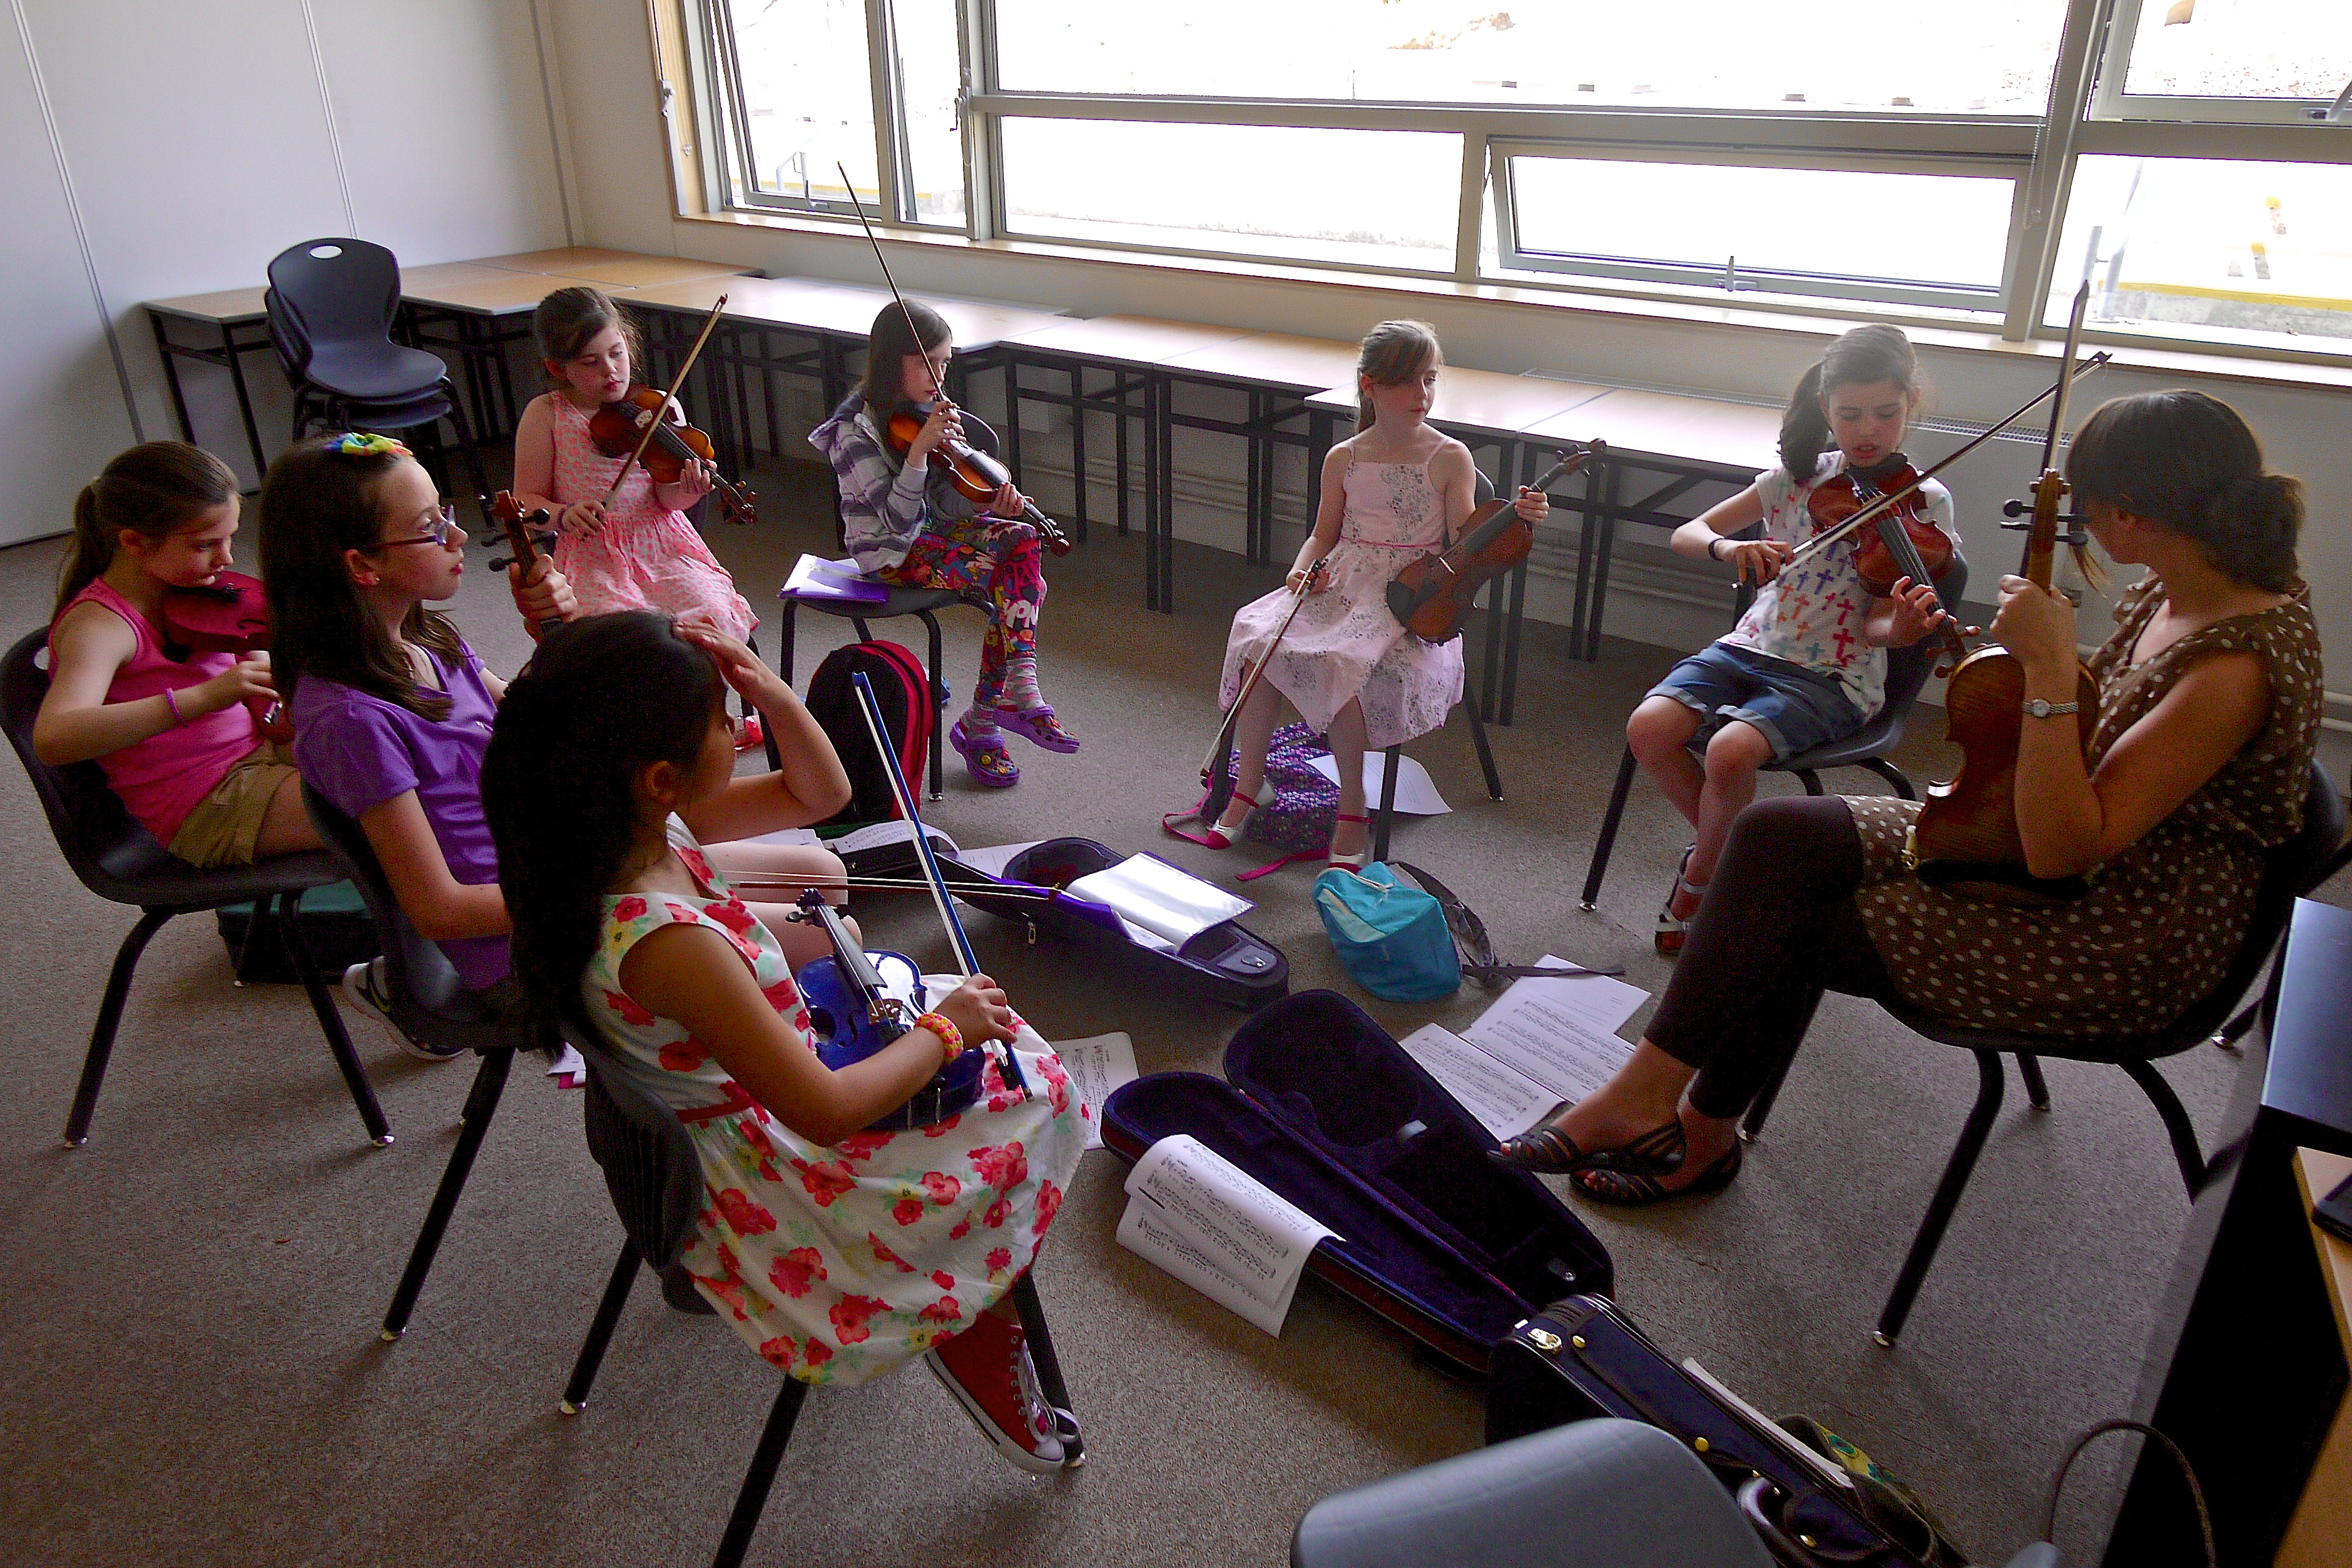 Theresa Kavanagh Fiddle Tutor at Ceol na Coille Summer School 2014